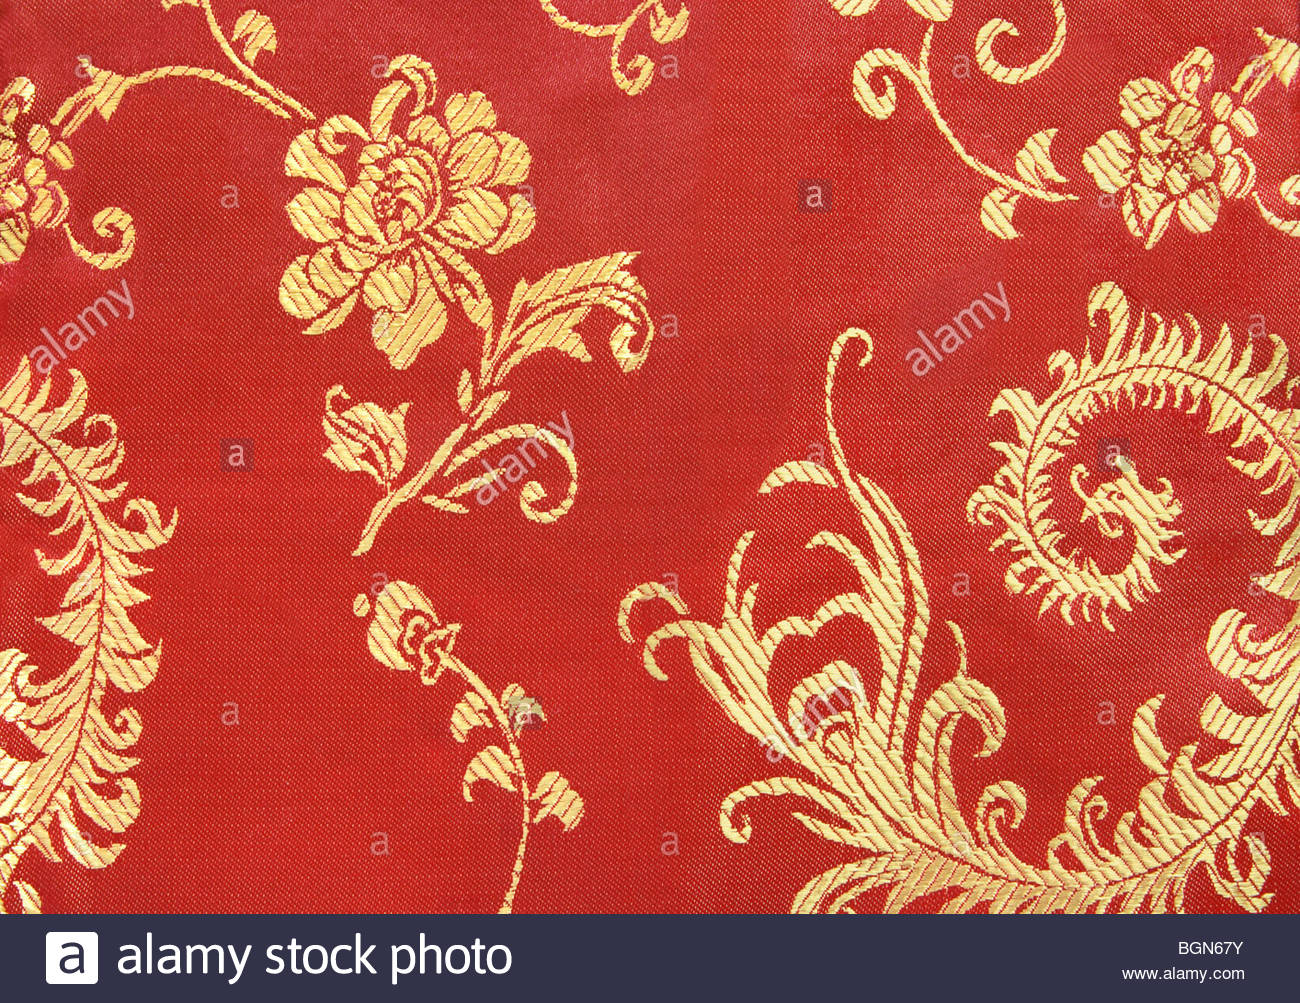 Chinese Red and Gold Textile Background Stock Photo 27510783   Alamy 1300x1003